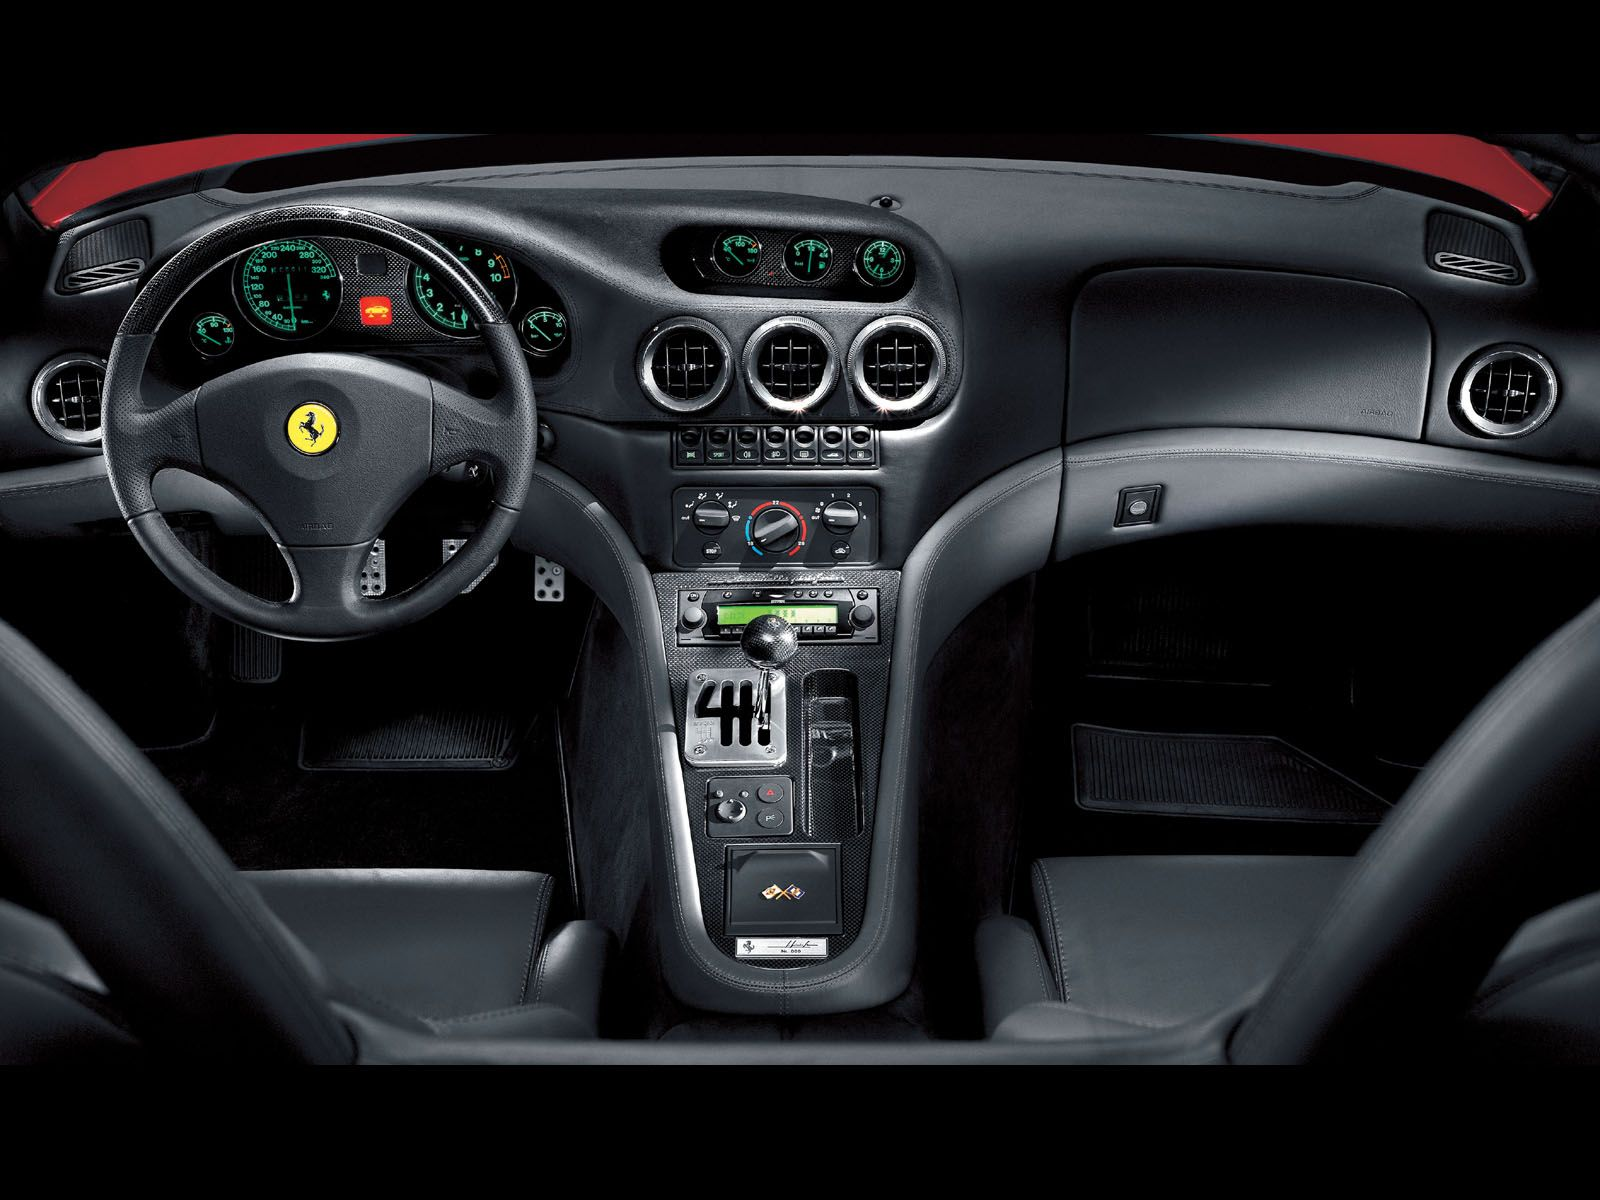 Ferrari auto car ferrari stallion logo image has a formidable one many people have the meaning of the symbol of the horse the horse in the sense the king in speed while buycottarizona